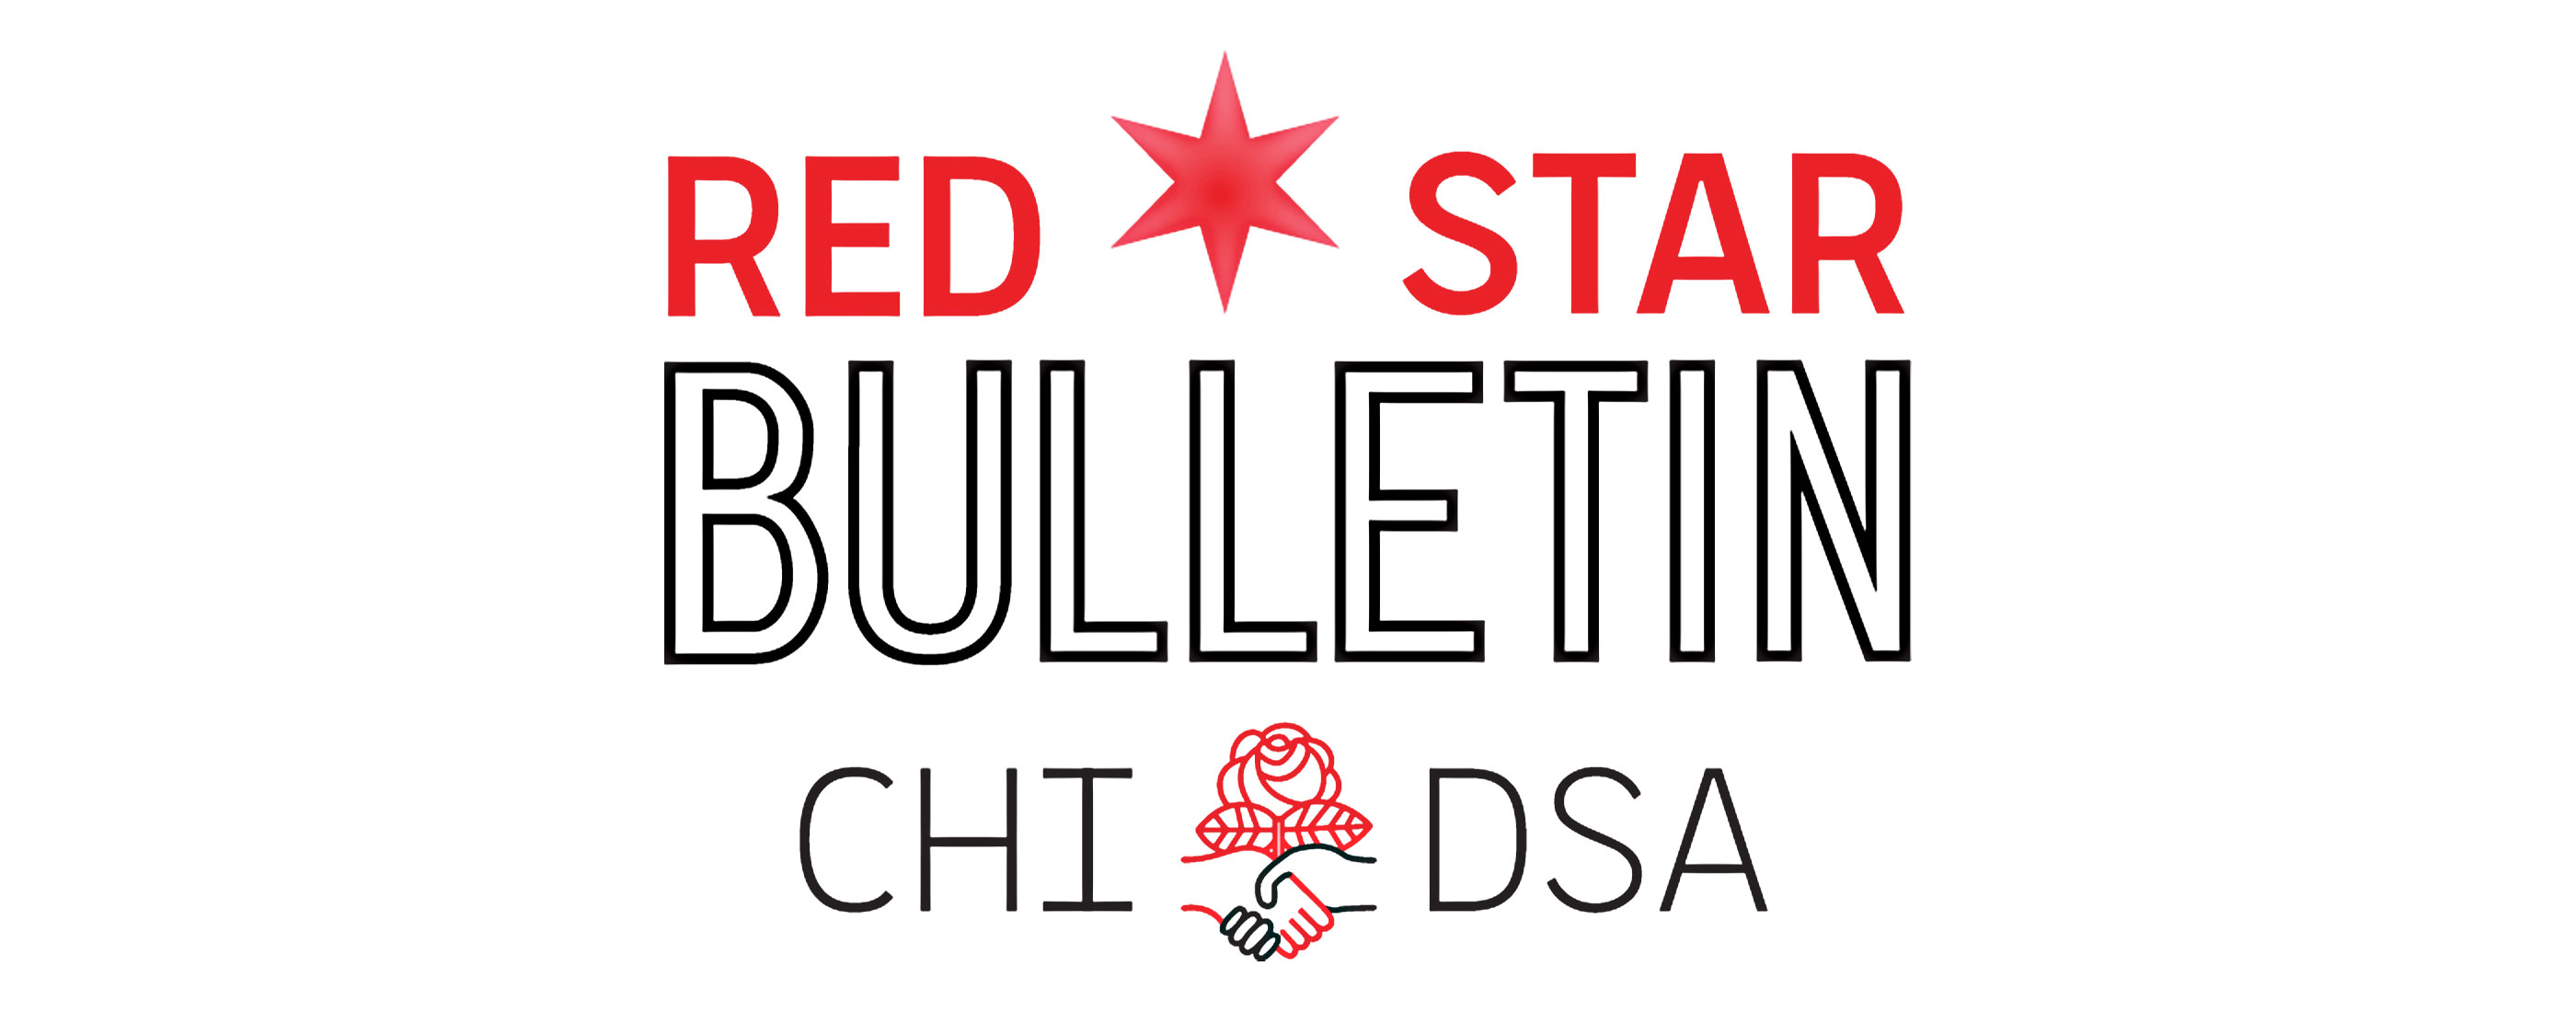 Red Star Bulletin Issue #12